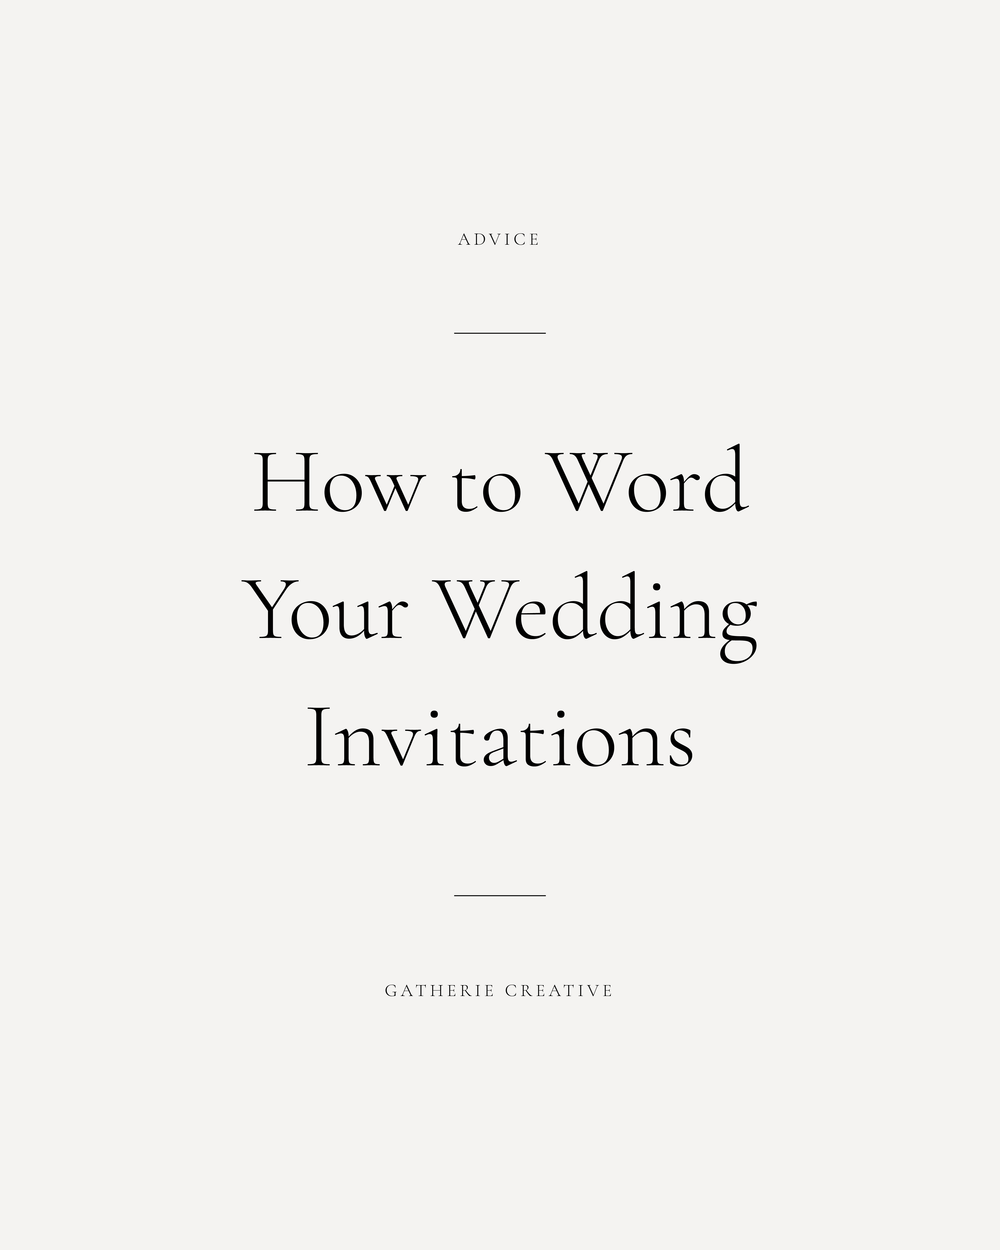 WEDDING INVITATION WORDING ETIQUETTE | Wedding invitation wording ...